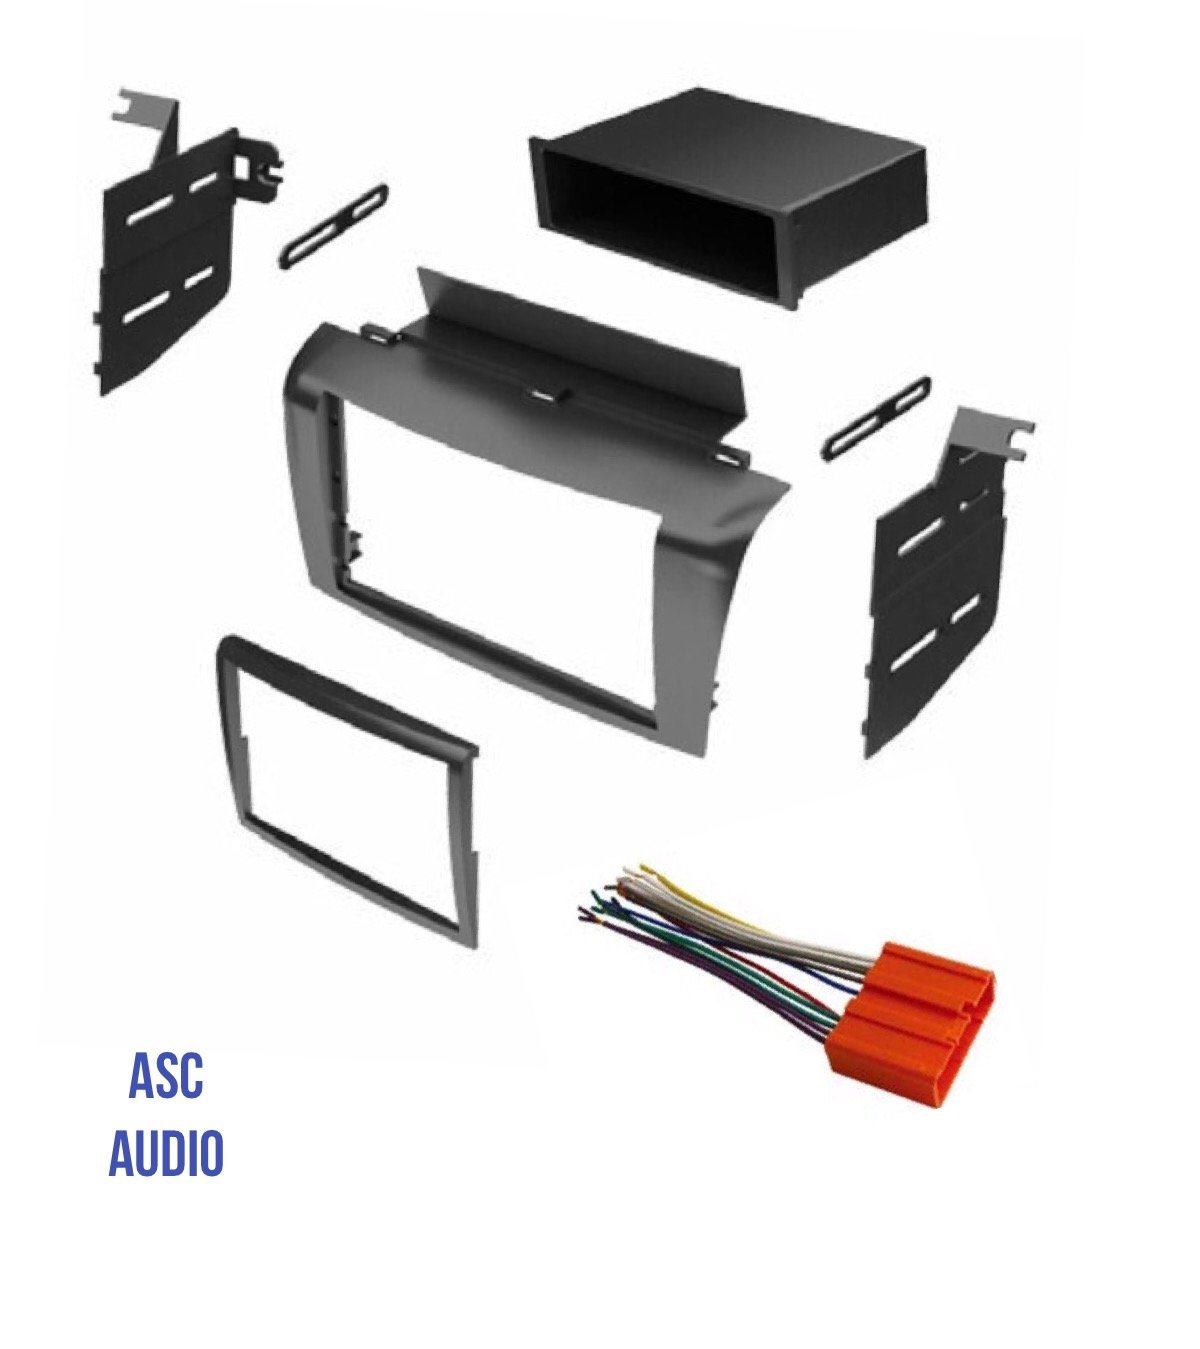 ASC Audio Car Stereo Radio Install Dash Mount Kit and Wire Harness for installing an Aftermarket Radio for 2004 2005 2006 2007 2008 2009 Mazda3 Mazda 3